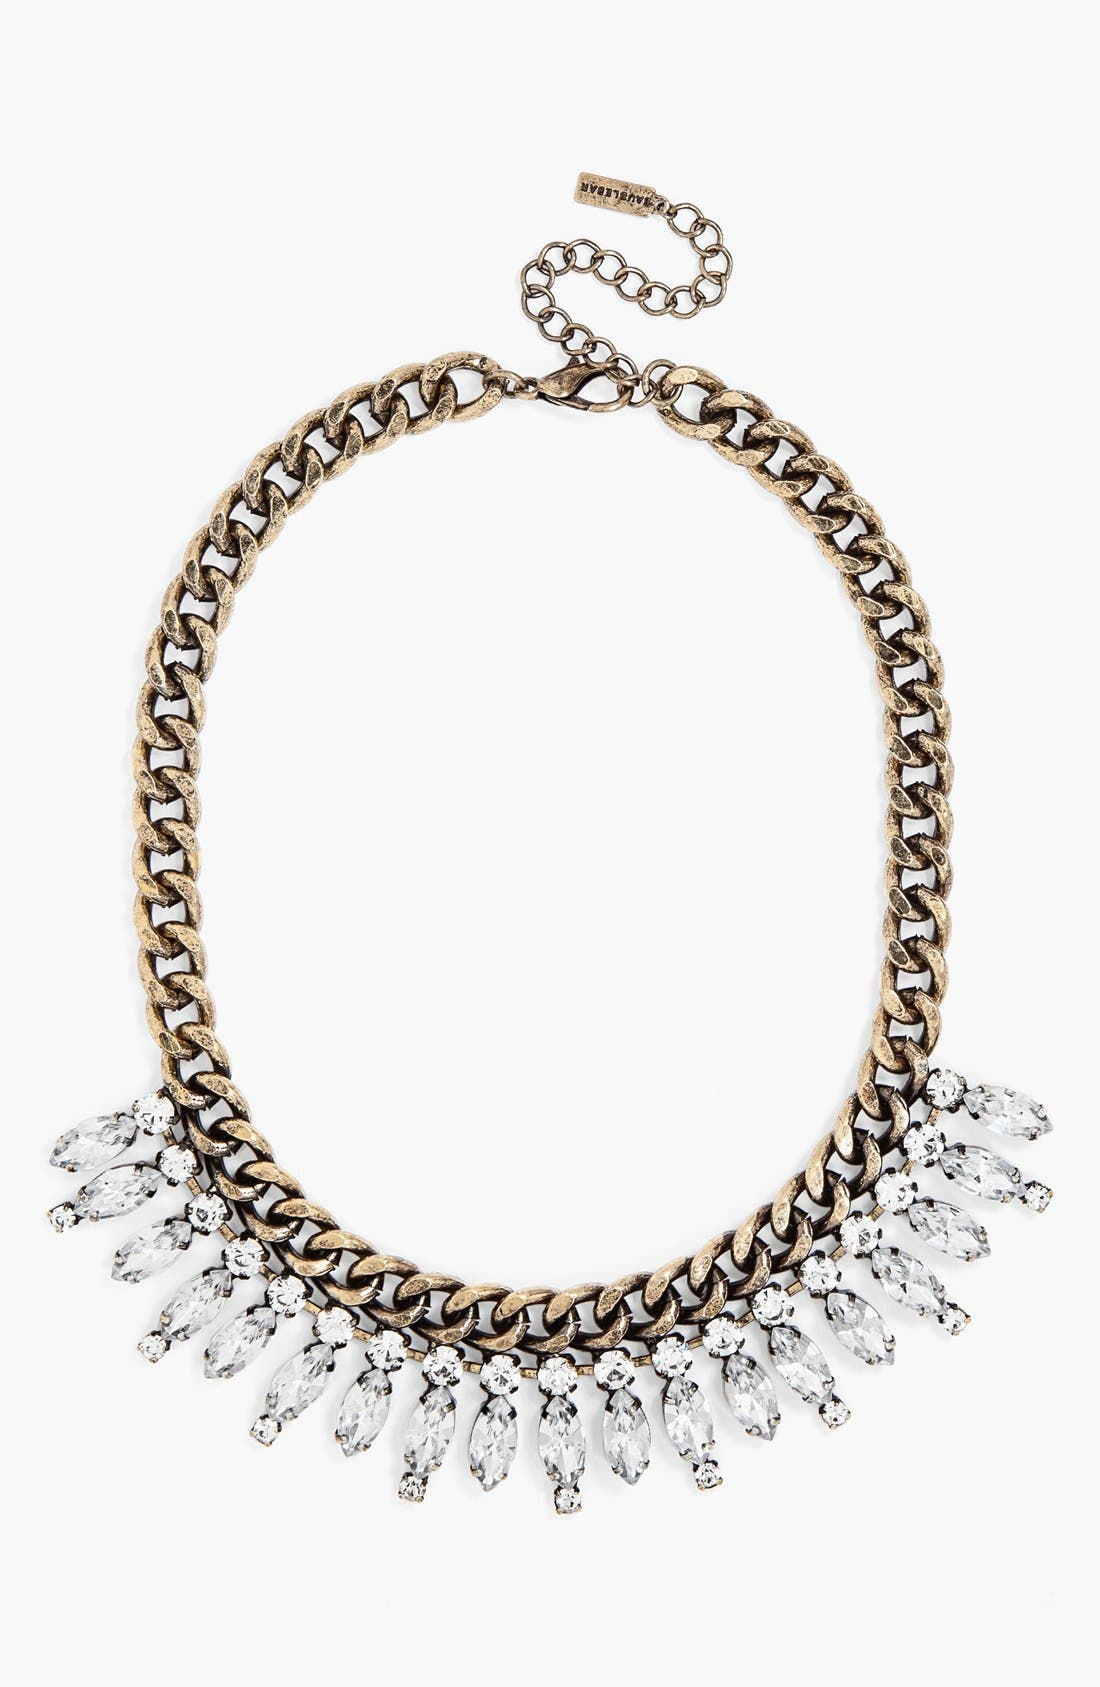 Main Image - BaubleBar 'Crystal Ray' Collar Necklace